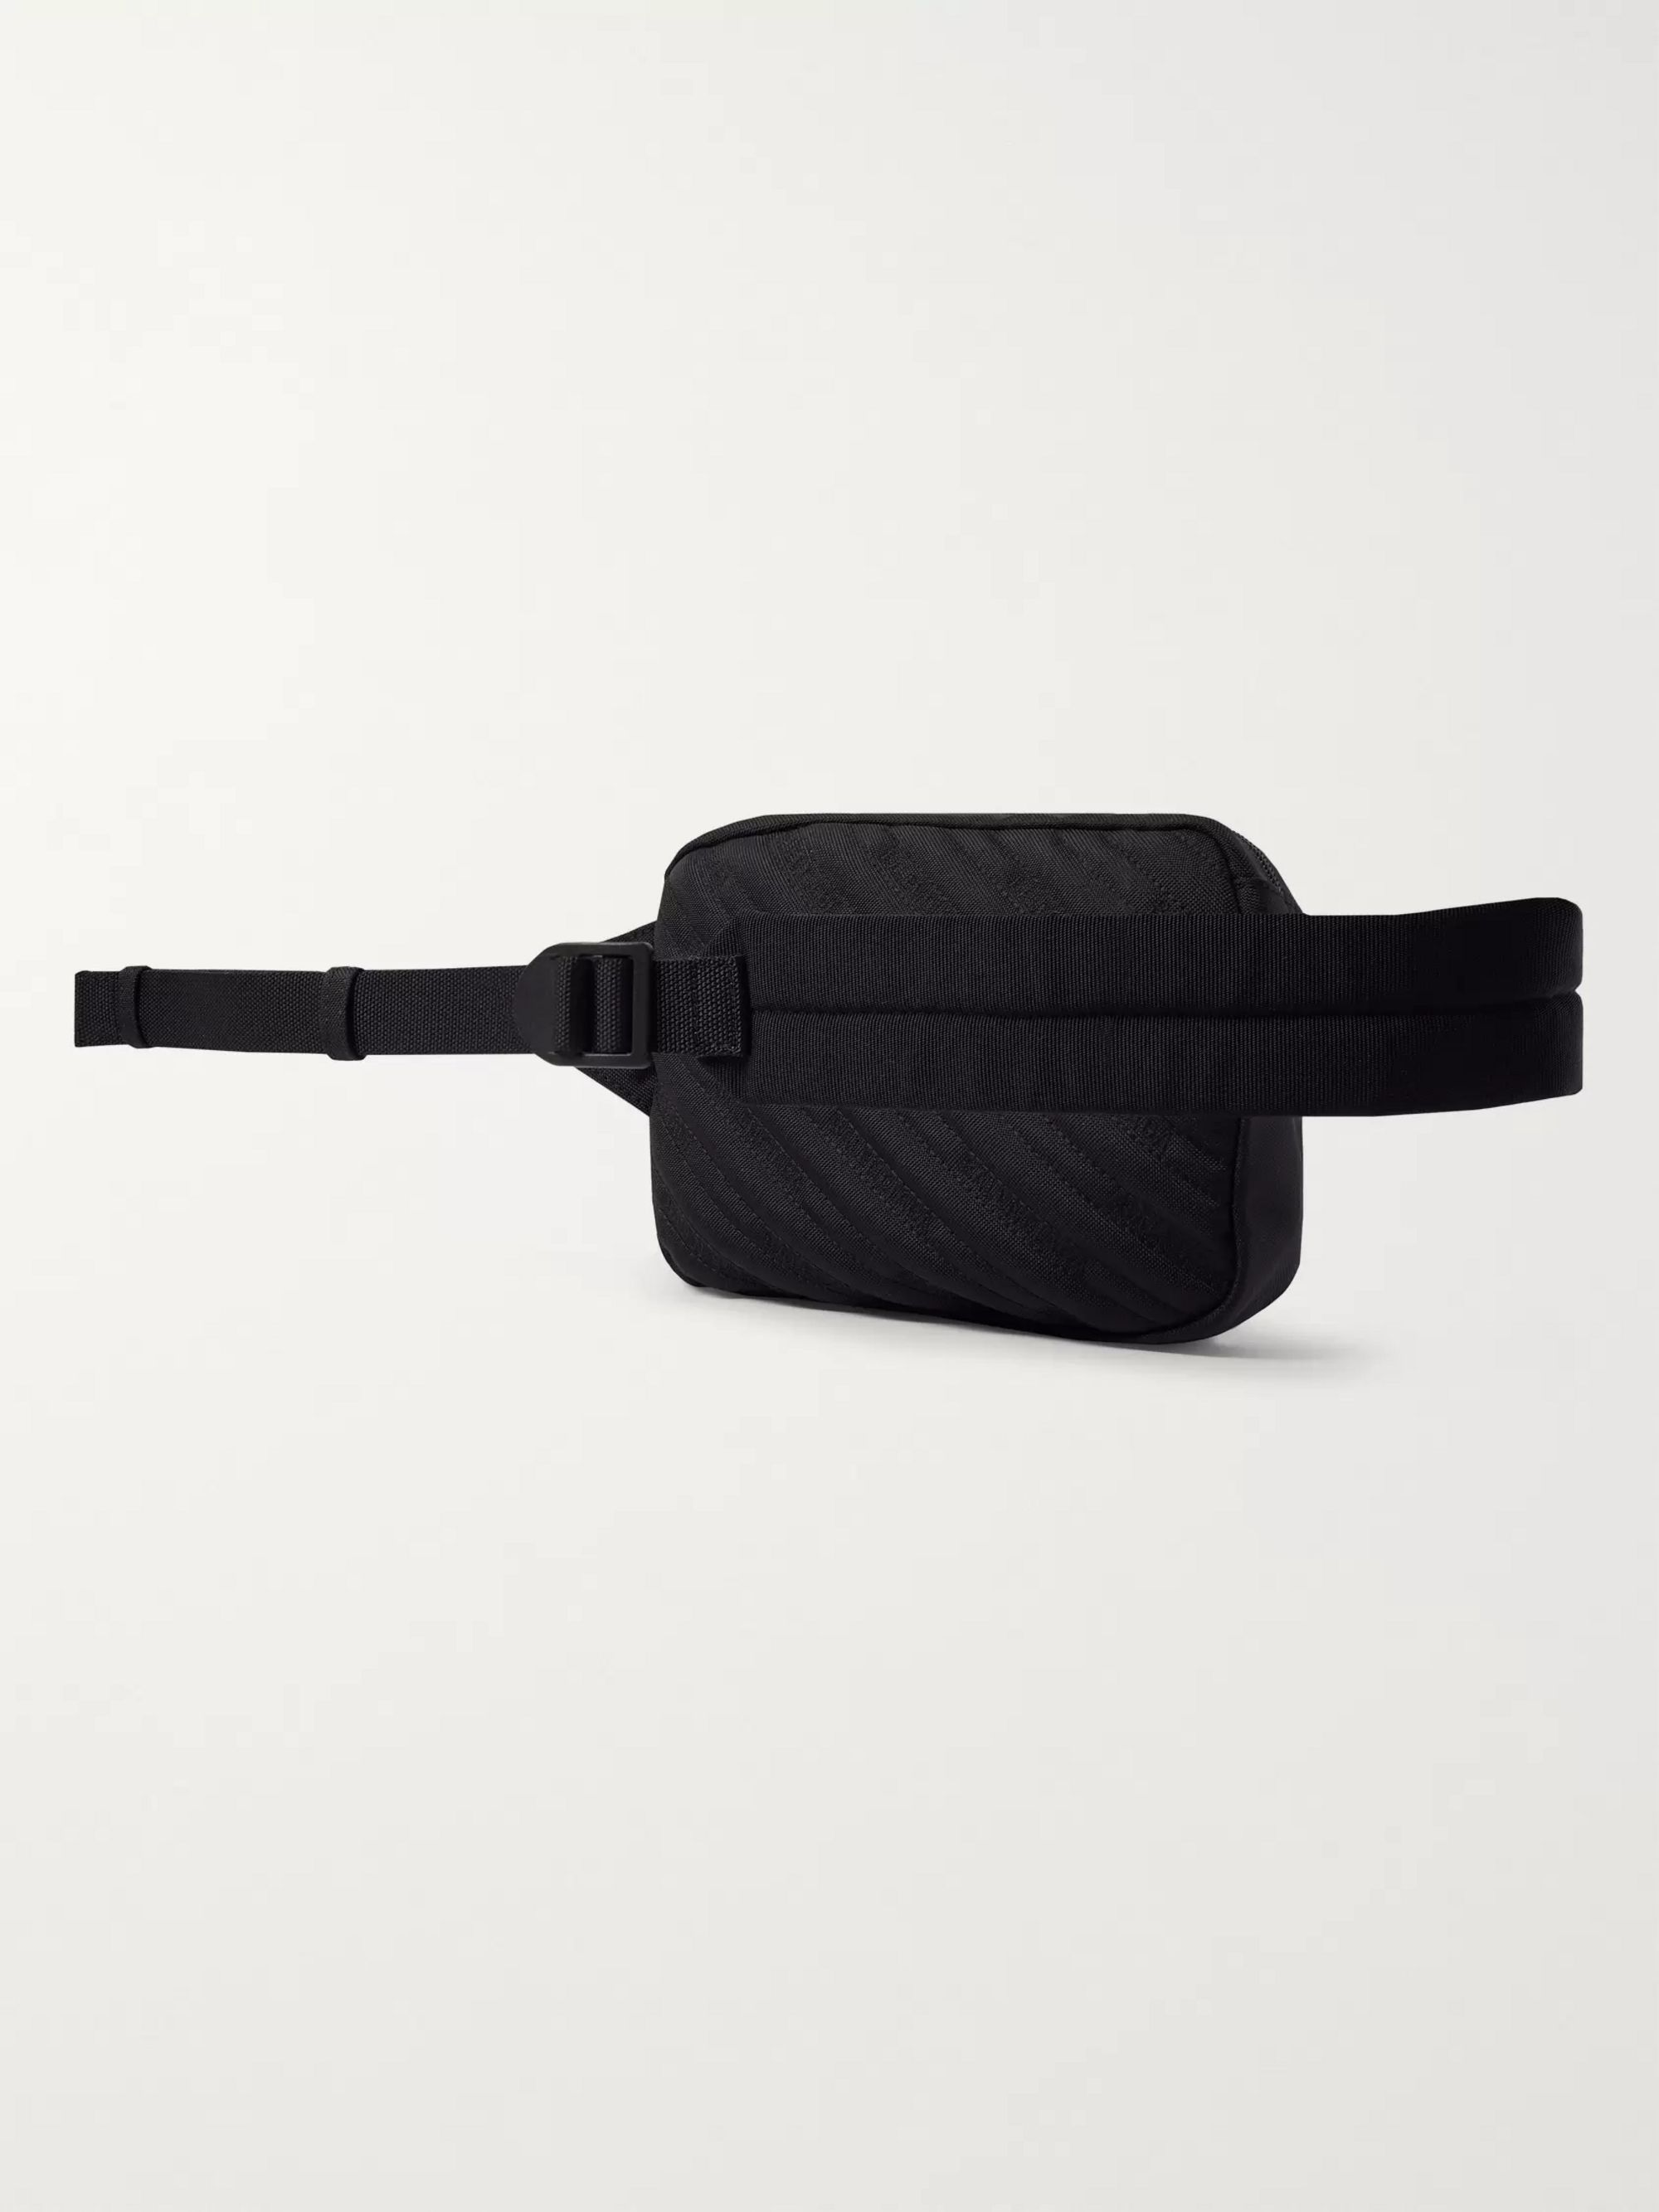 Balenciaga Canvas Belt Bag